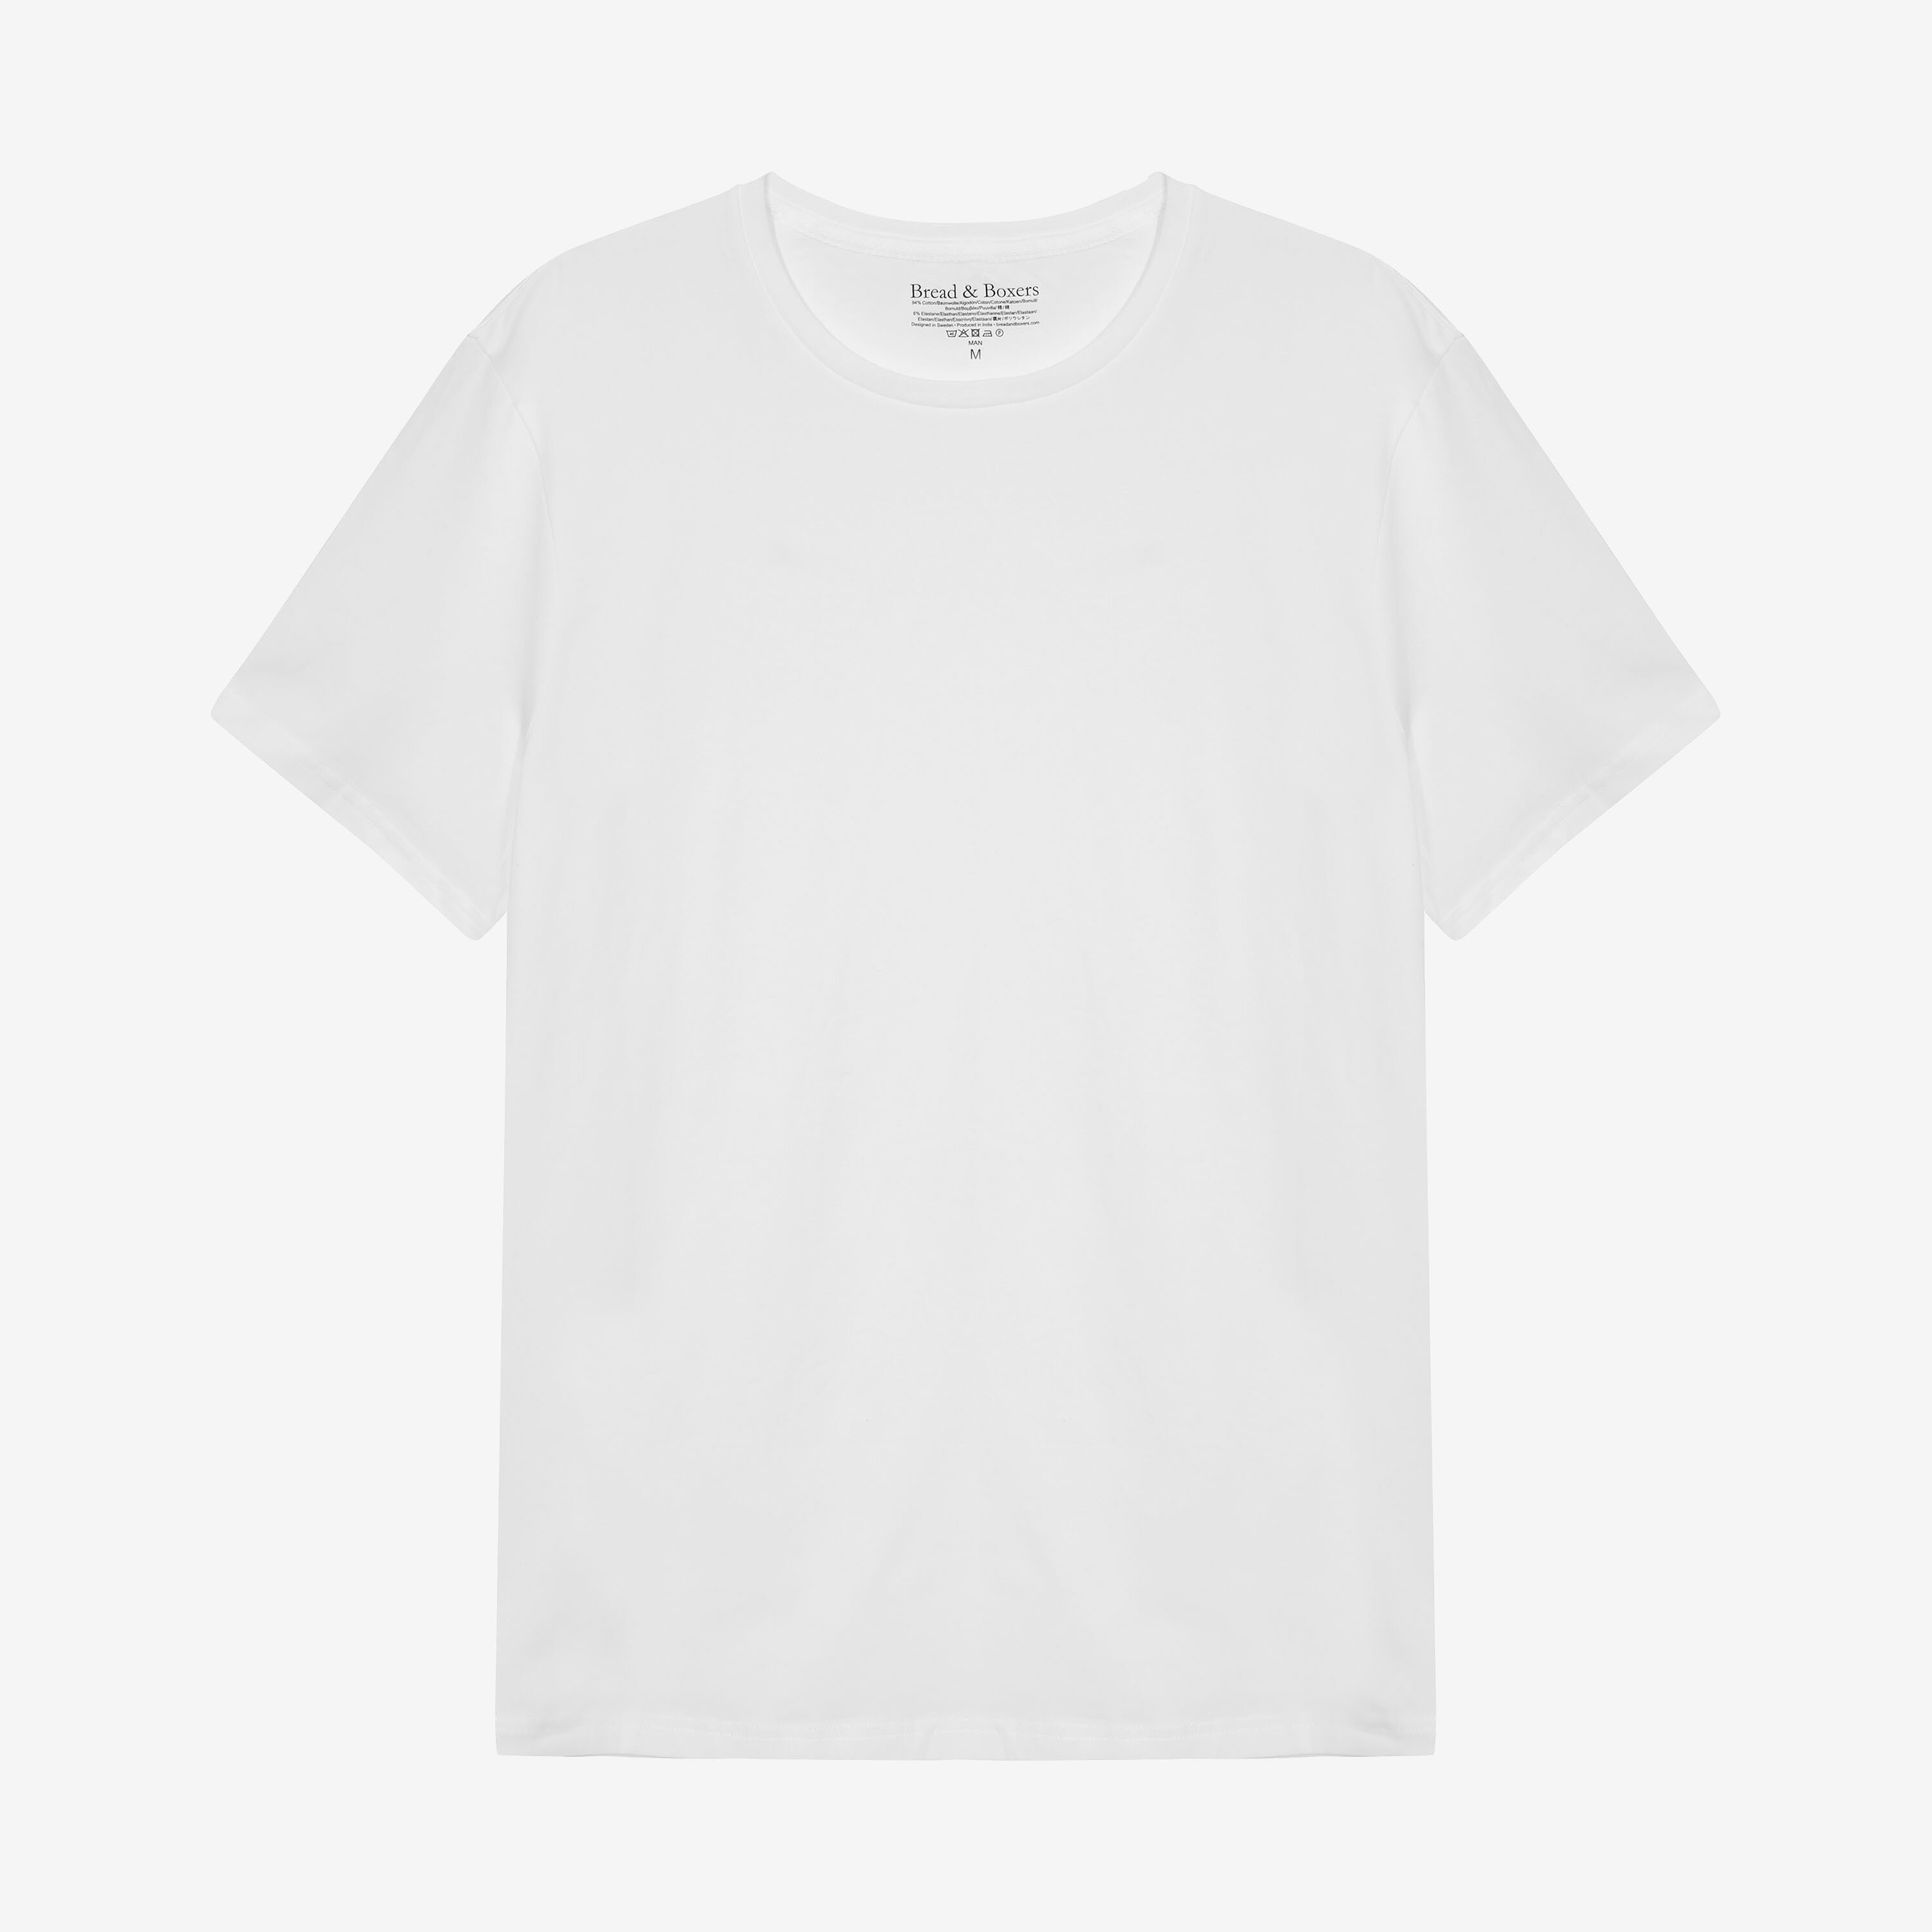 101201_Man_Crew-Neck_white_CO